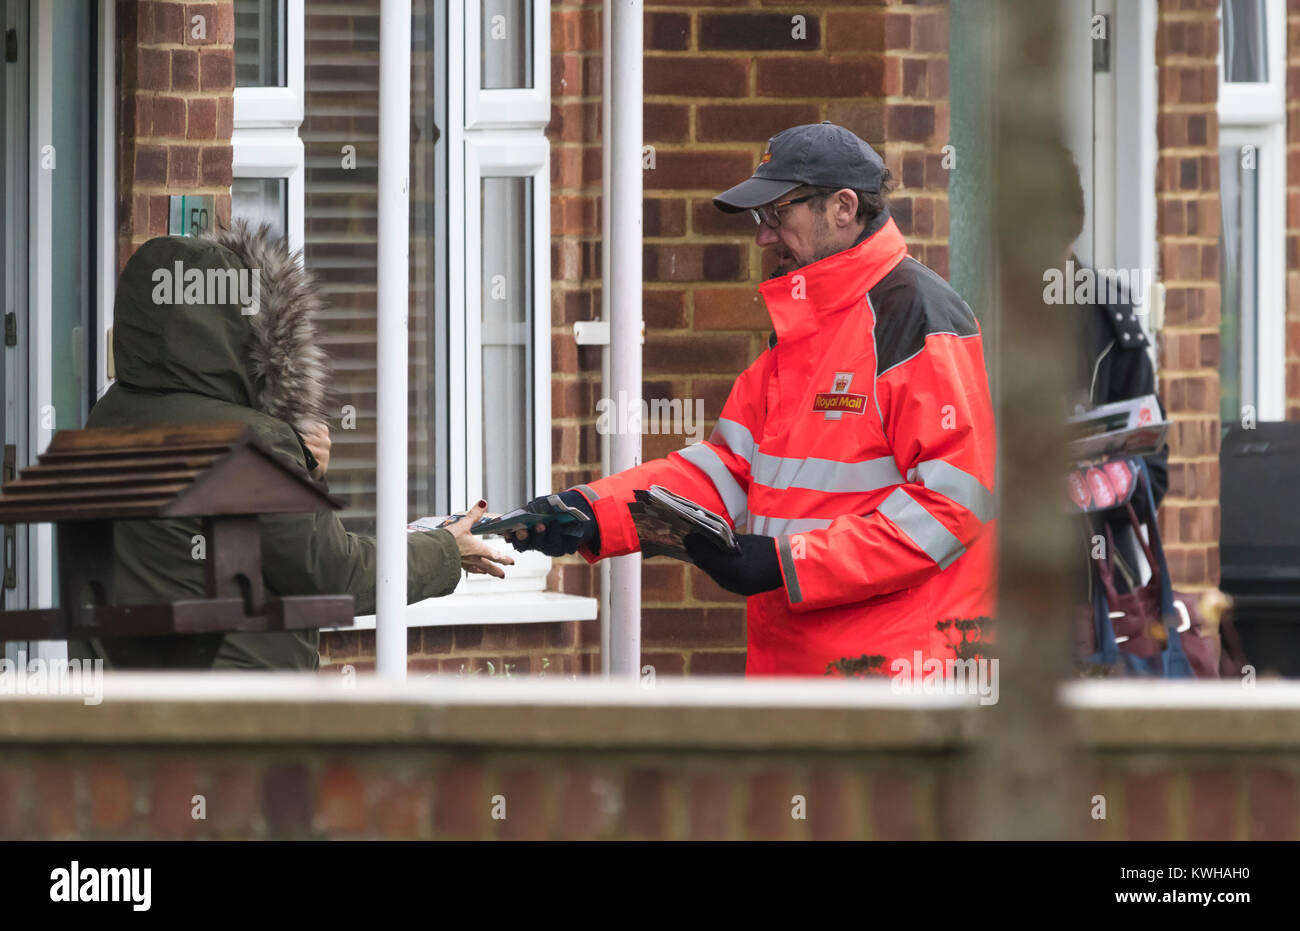 Royal Mail postman passing post to someone in England, UK. - Stock Image